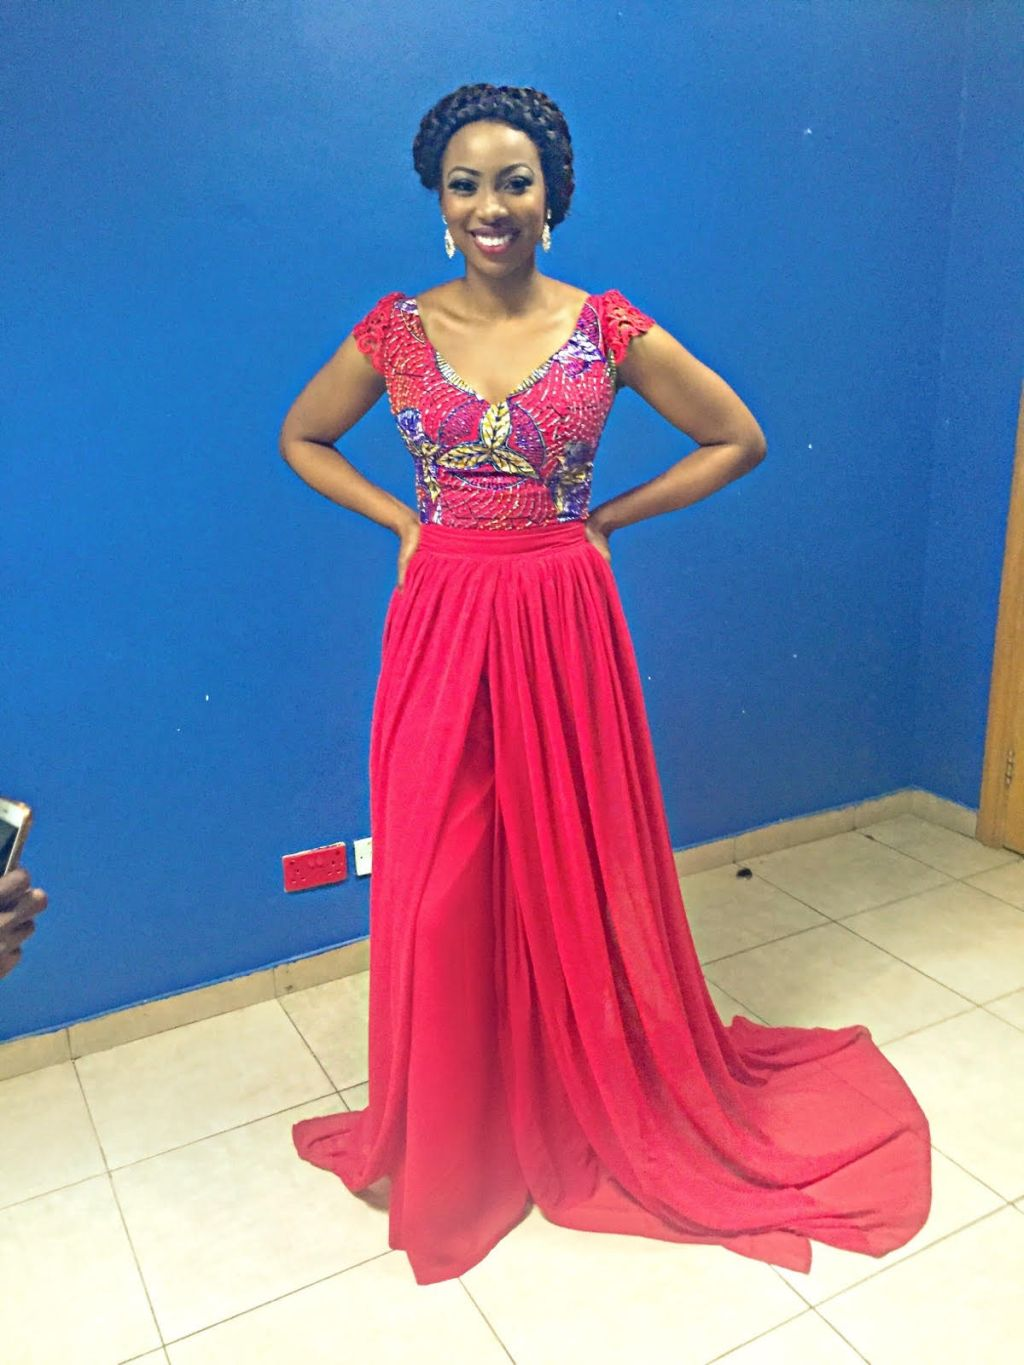 Bolanle Olukanni in Moofa for Project Fame - BellaNaija - September 2015